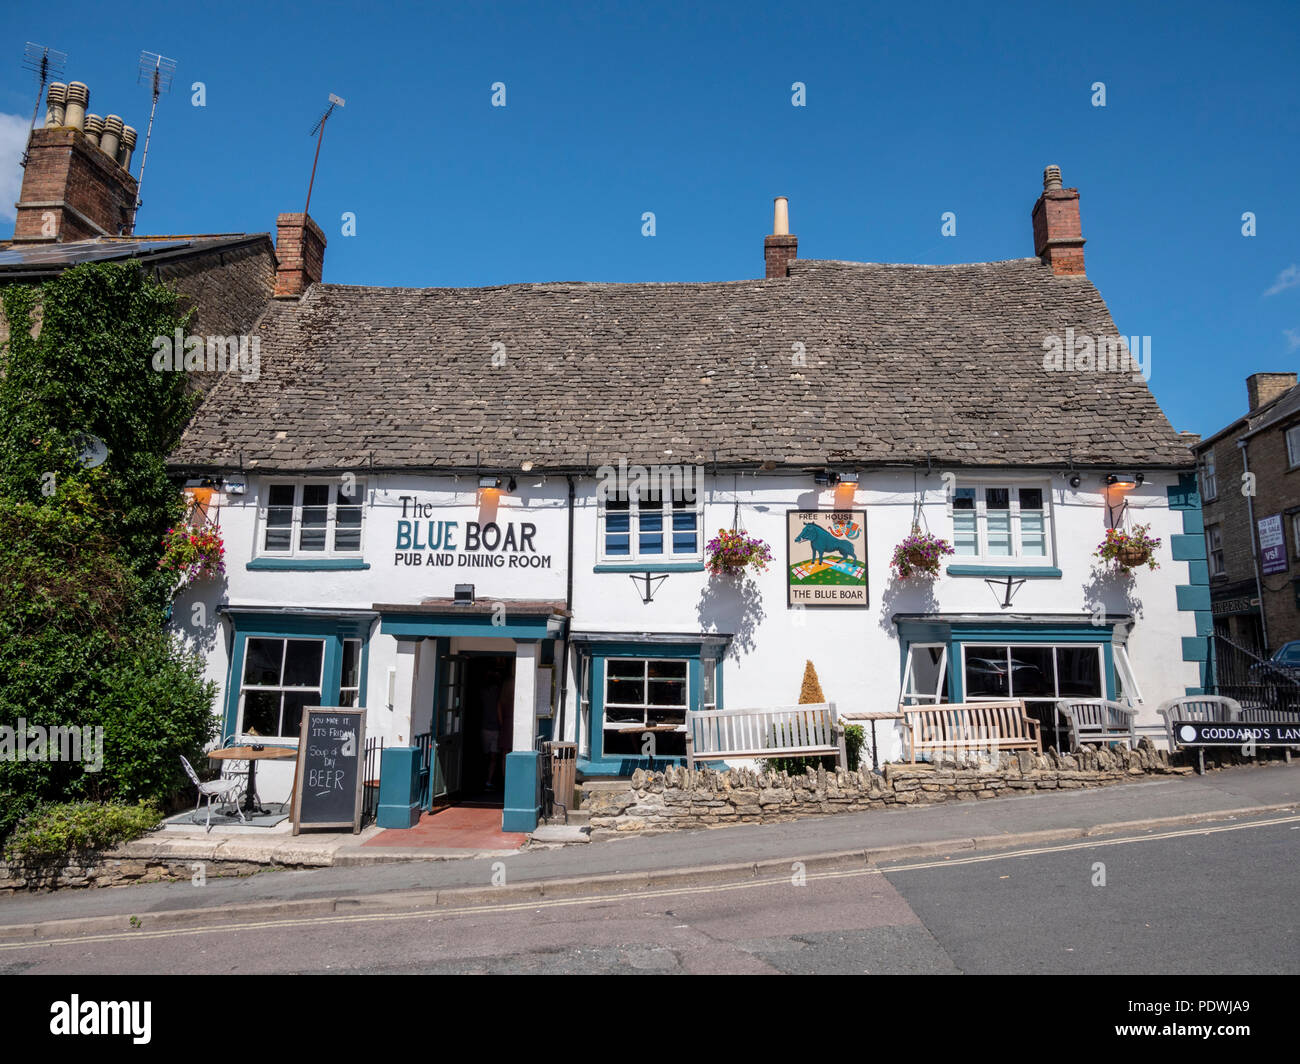 Die Blue Boar Pub und einen Speisesaal, Chipping Norton Oxfordshire UK Stockbild